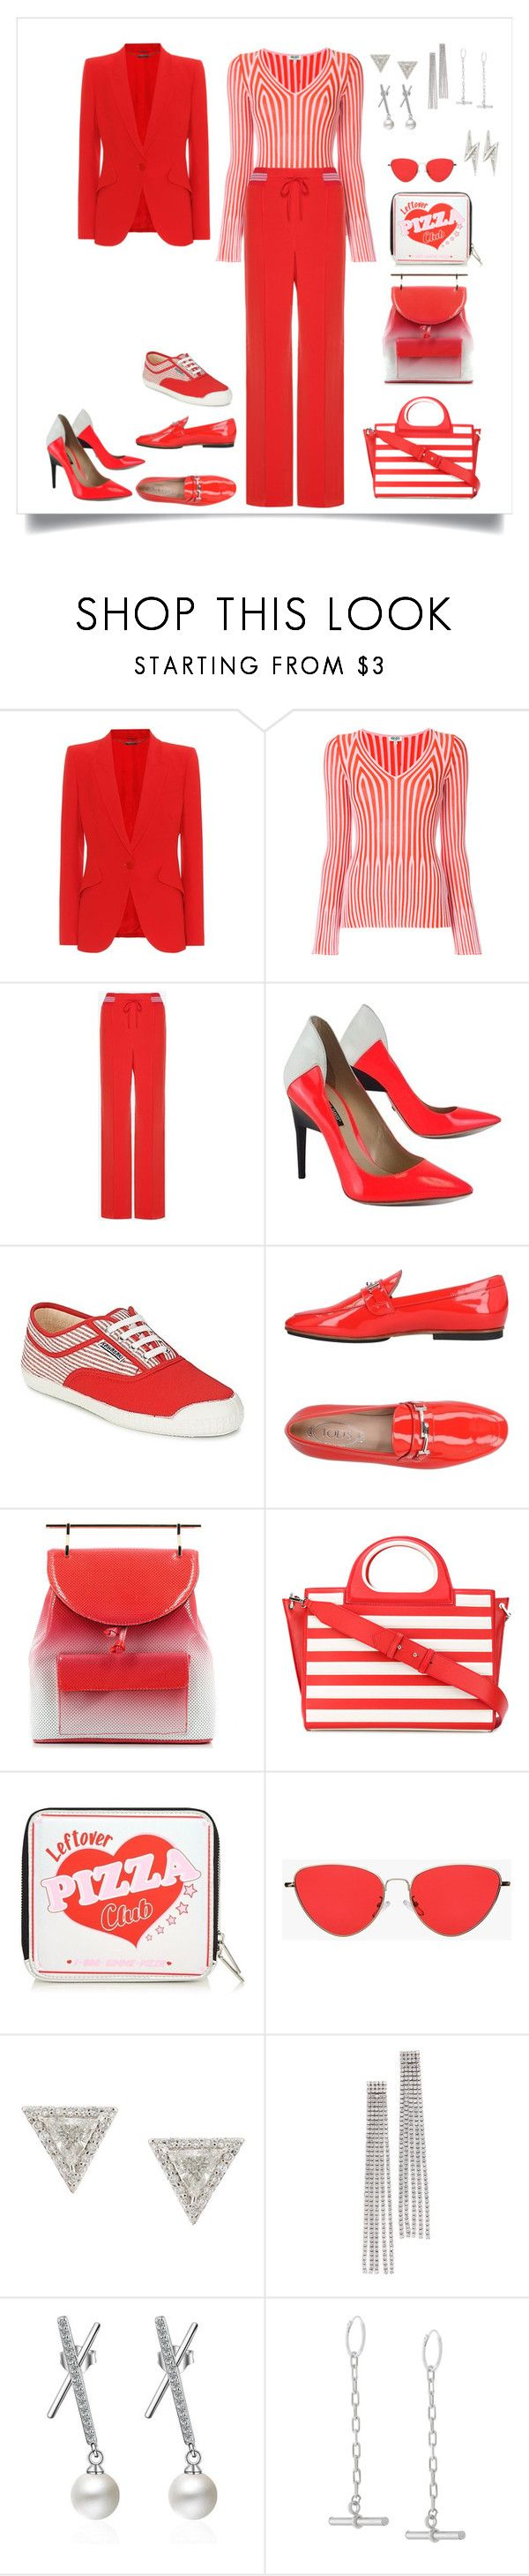 """""""Total Look: Red #2"""" by guselmanchik ❤ liked on Polyvore featuring Alexander McQueen, Kenzo, Valentino, Ruthie Davis, Kawasaki, Tod's, M2Malletier, MaxMara, Lizzie Mandler and Marc Jacobs"""